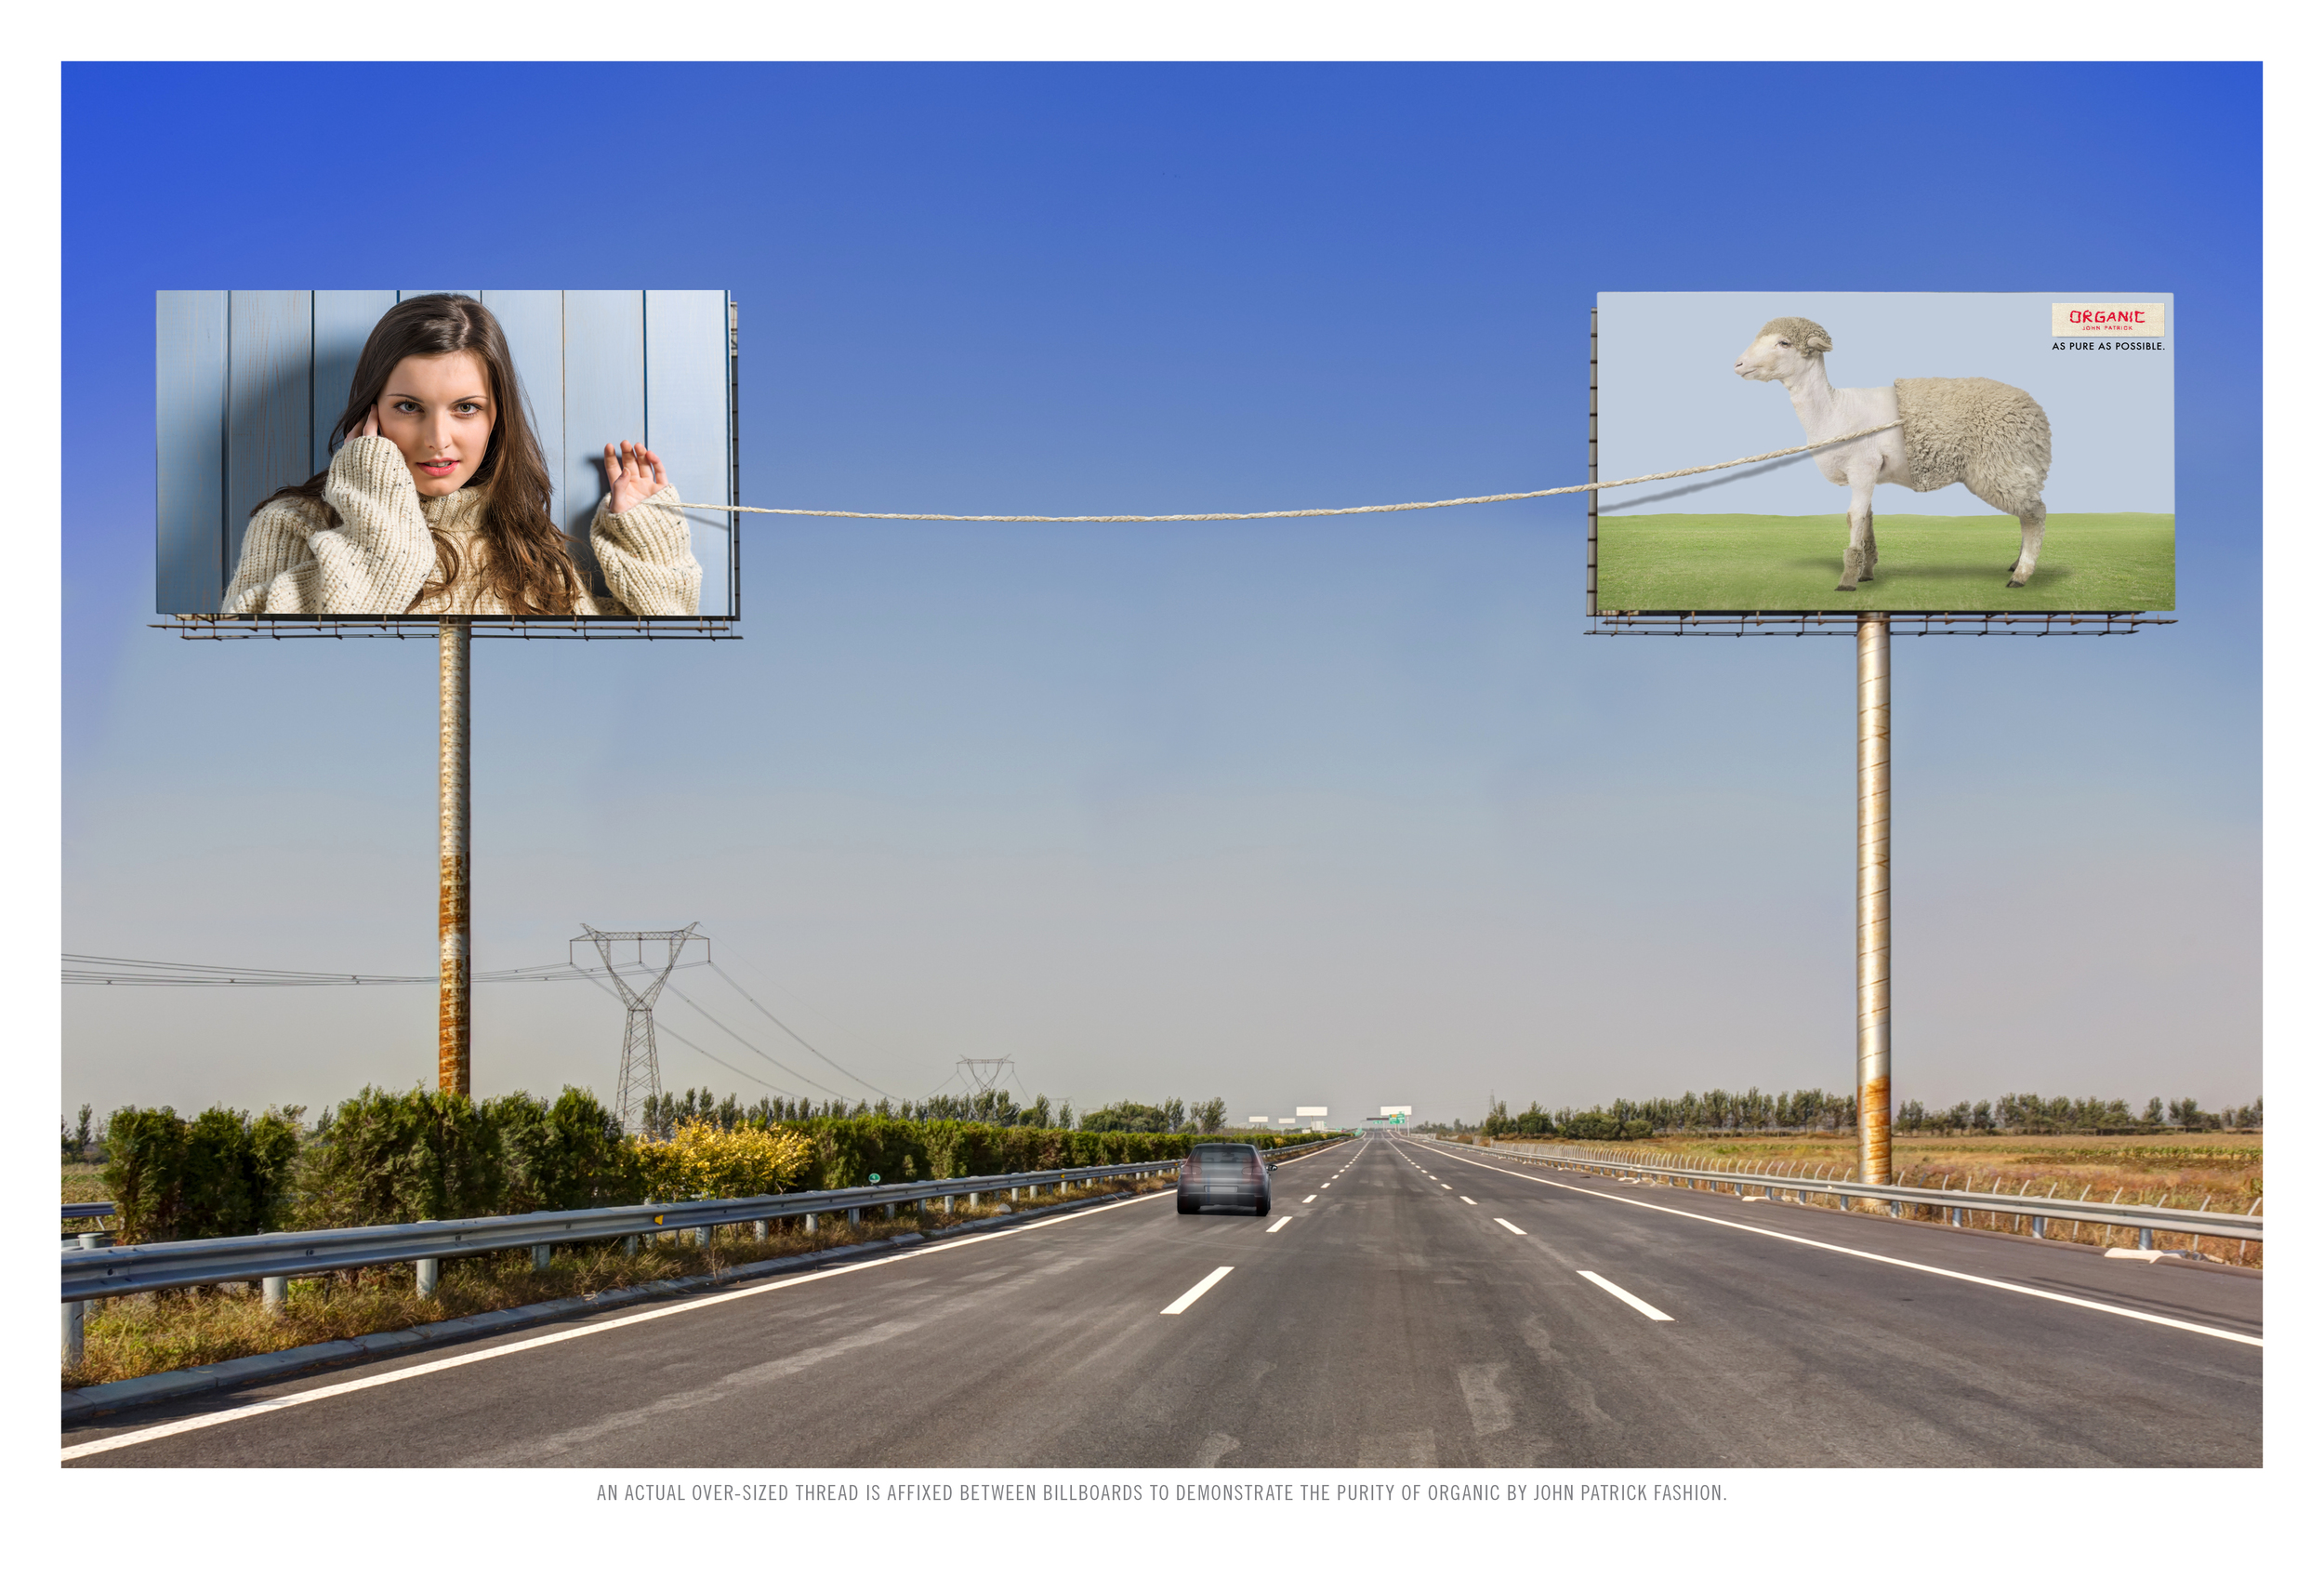 AN ACTUAL OVER-SIZED THREAD IS AFFIXED BETWEEN BILLBOARDS TO DEMONSTRATE THE PURITY OF ORGANIC BY JOHN PATRICK FASHION.